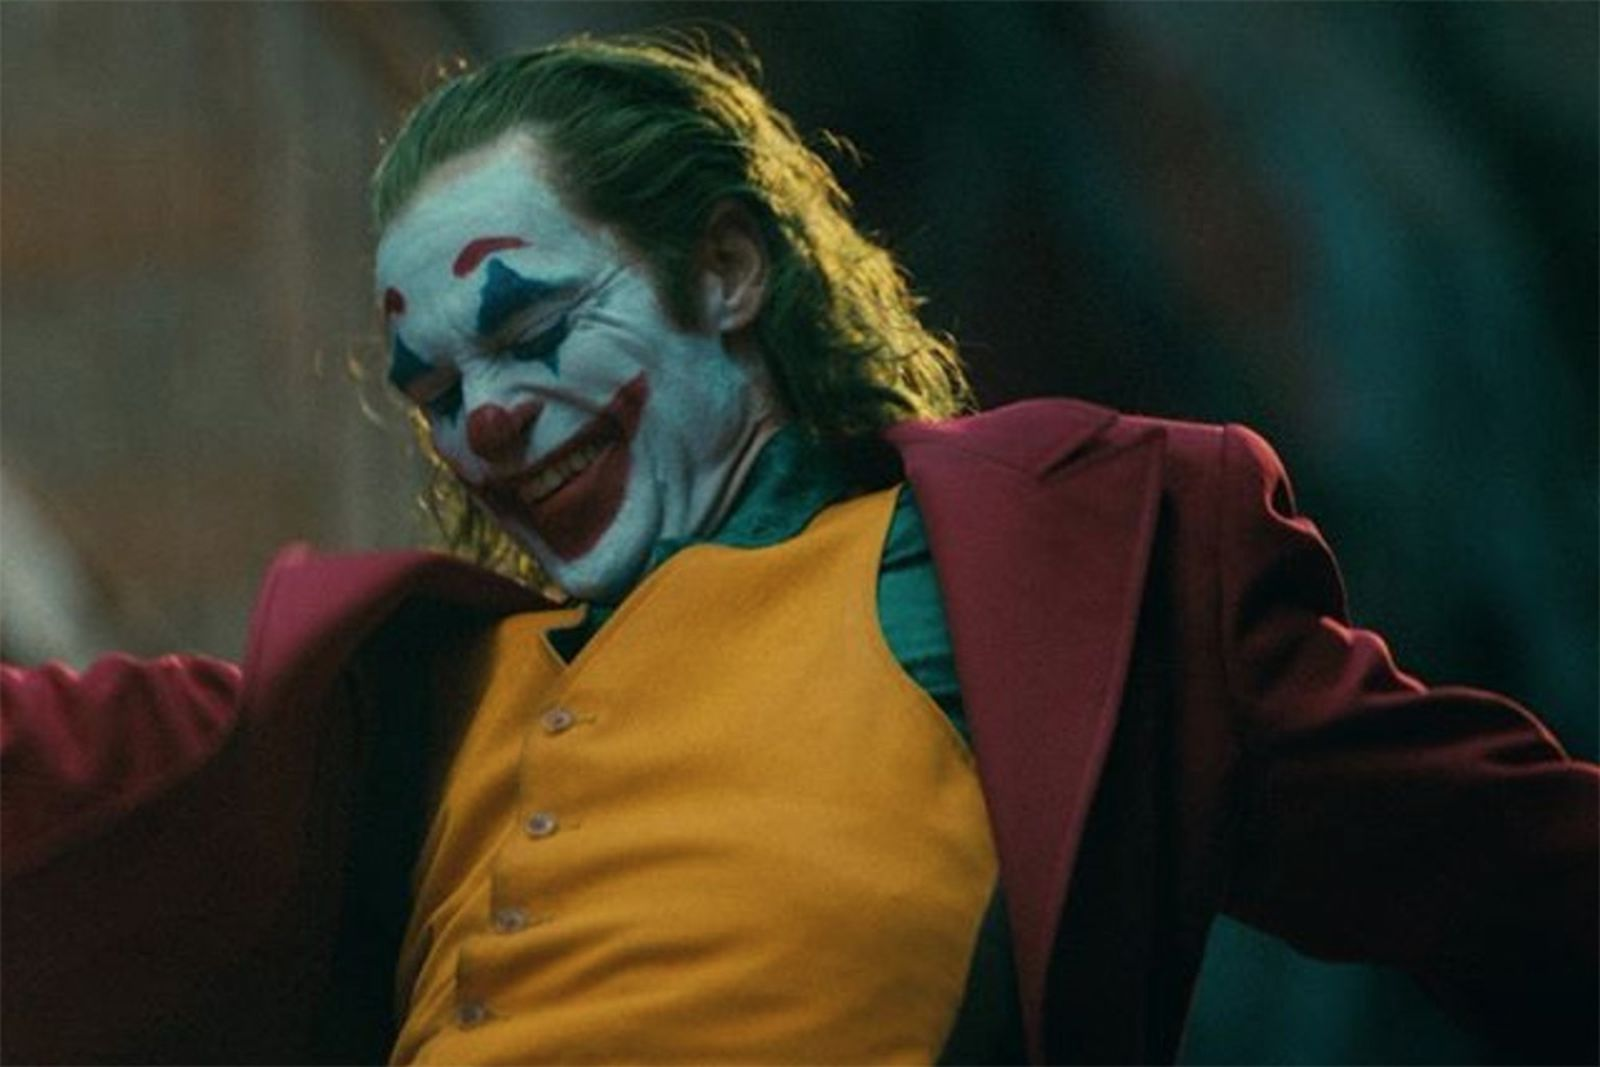 Joaquin phoenix as joker smiling